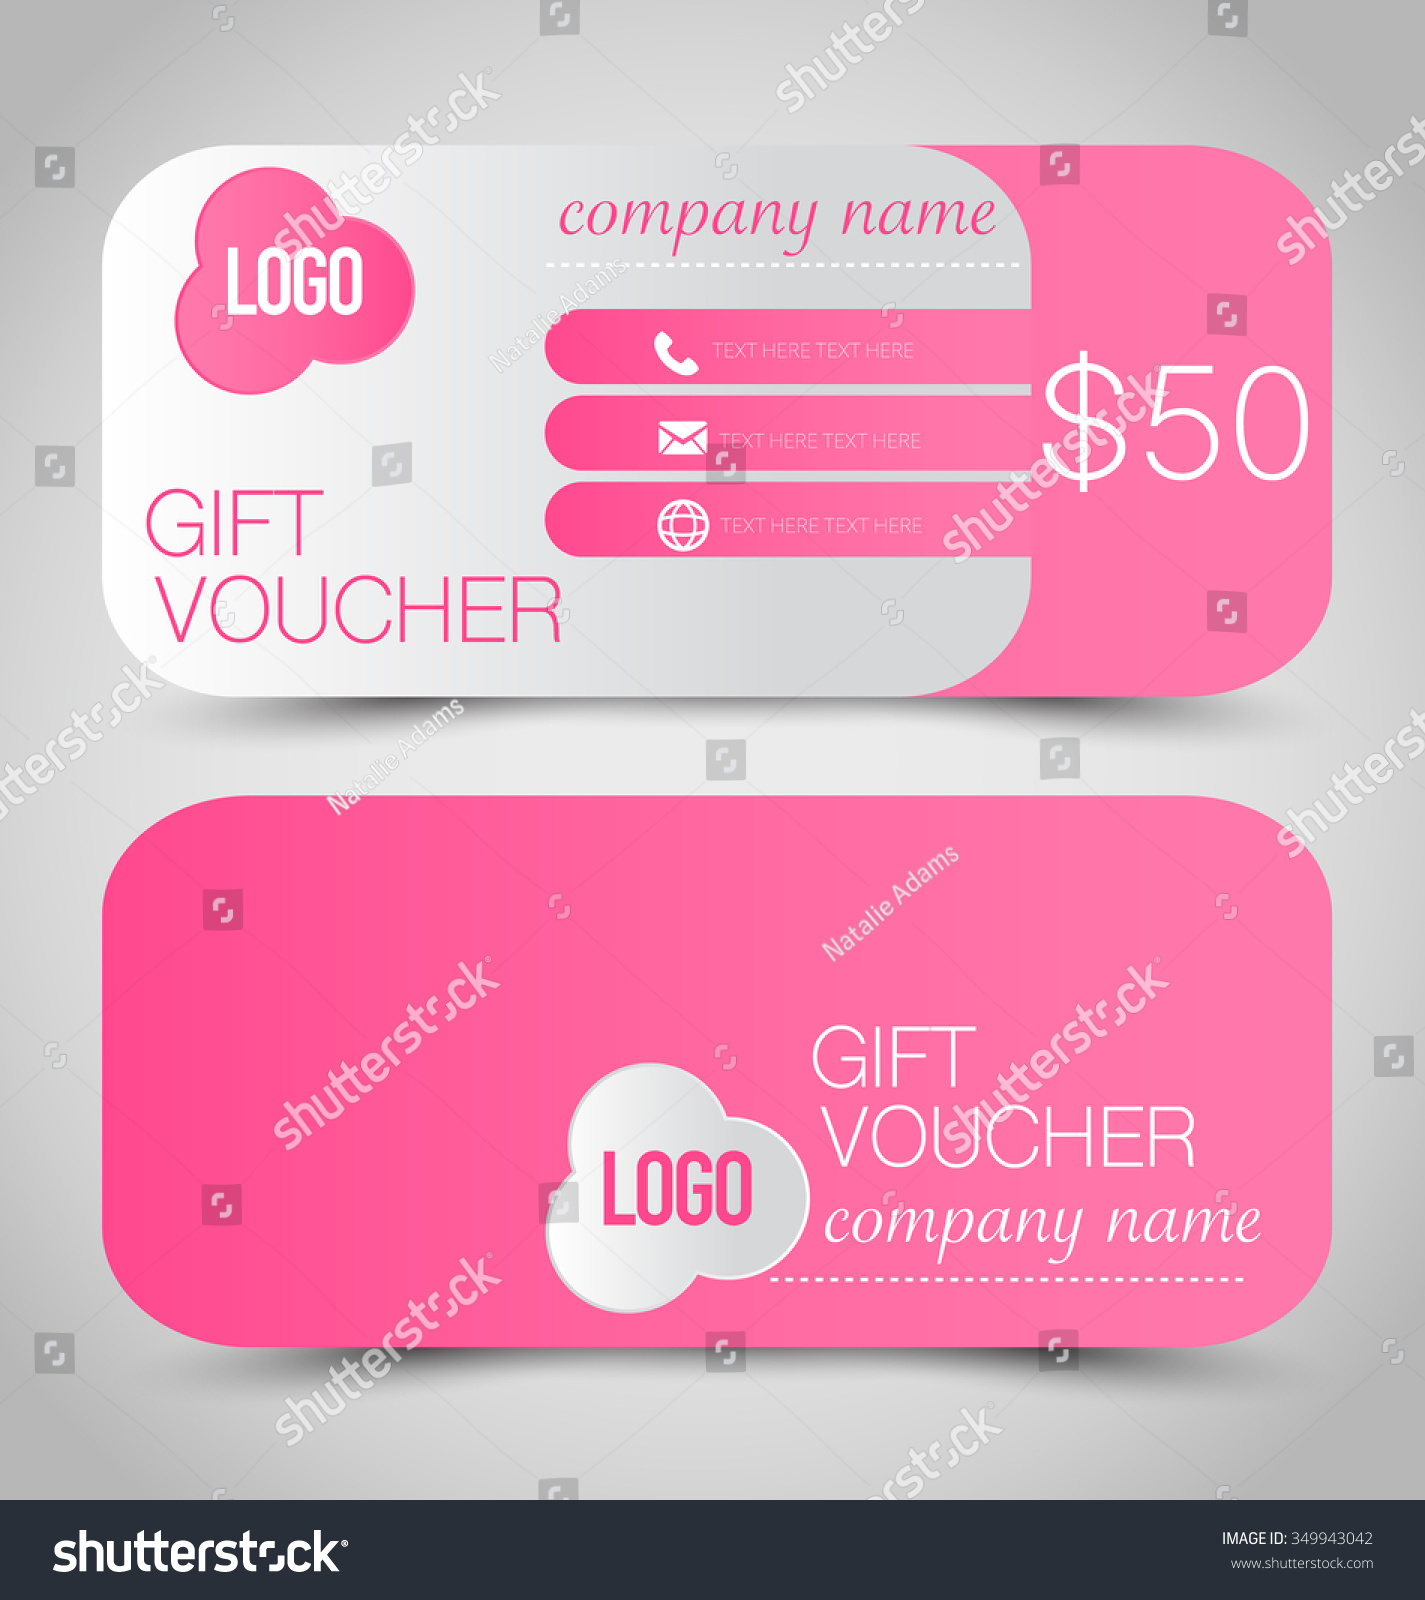 gift card voucher business banner template stock vector 349943042 gift card voucher business banner template pink color